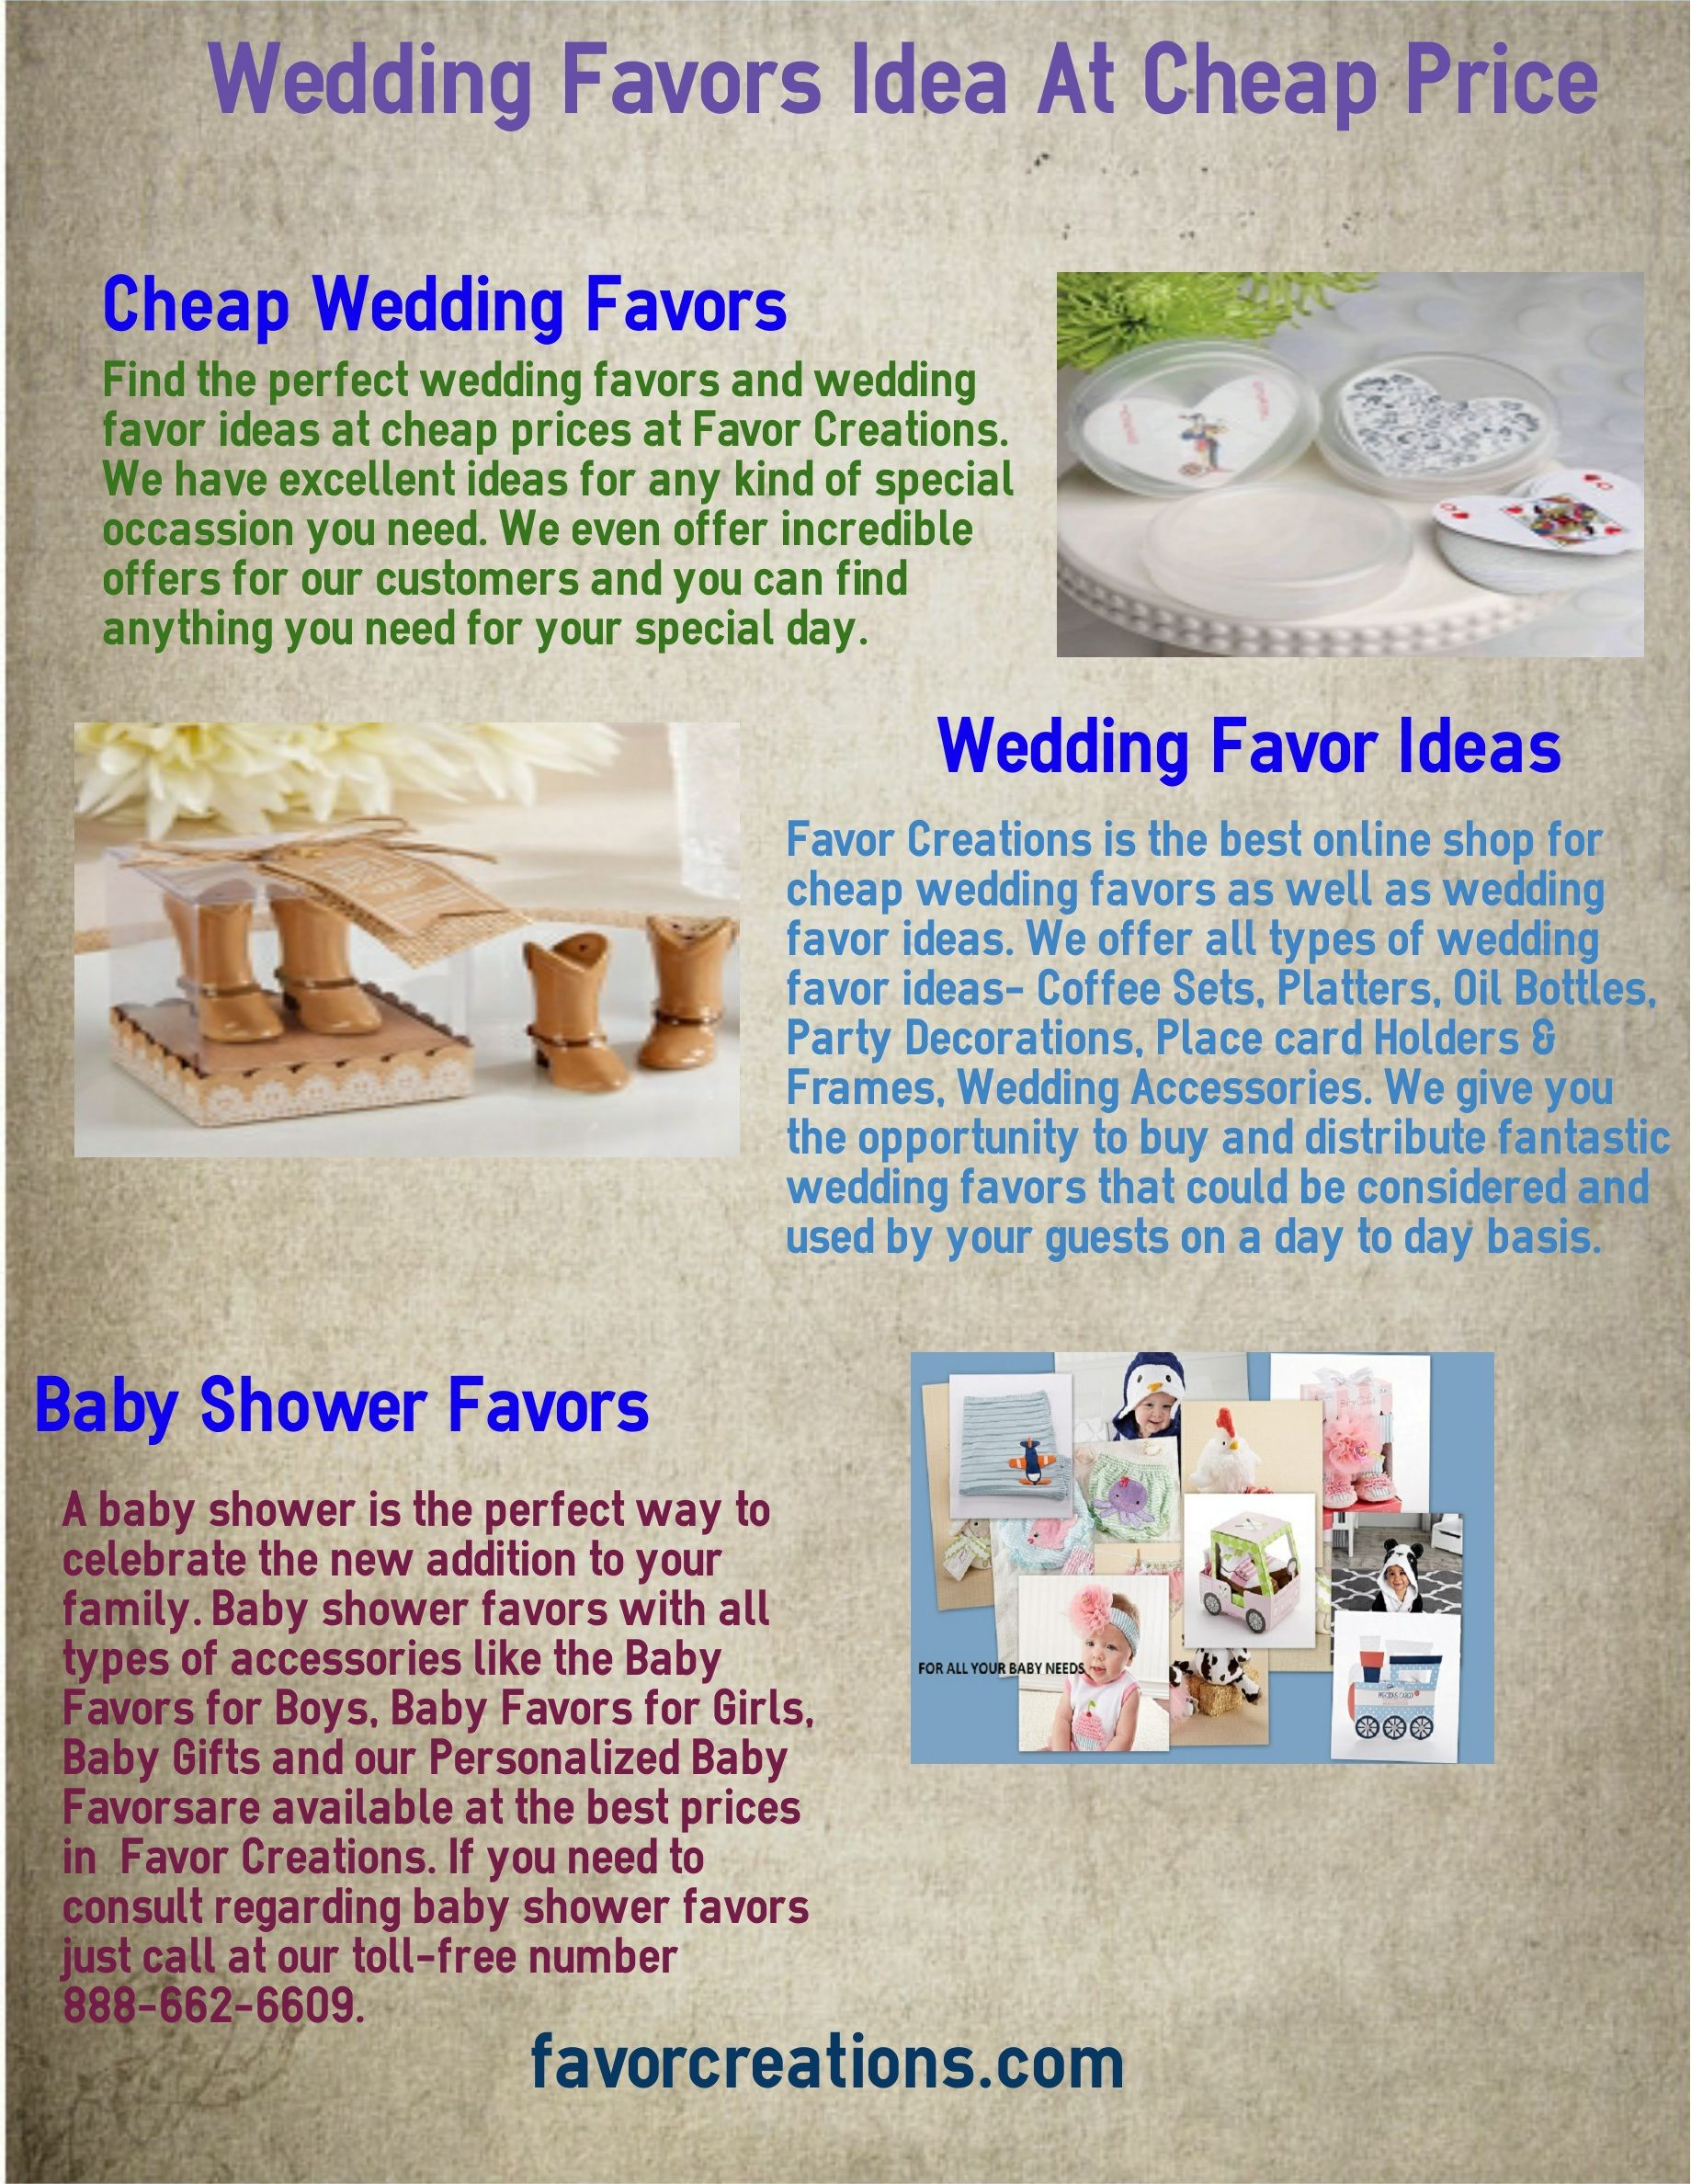 Favor Creations is the best online shop for cheap wedding favors as ...